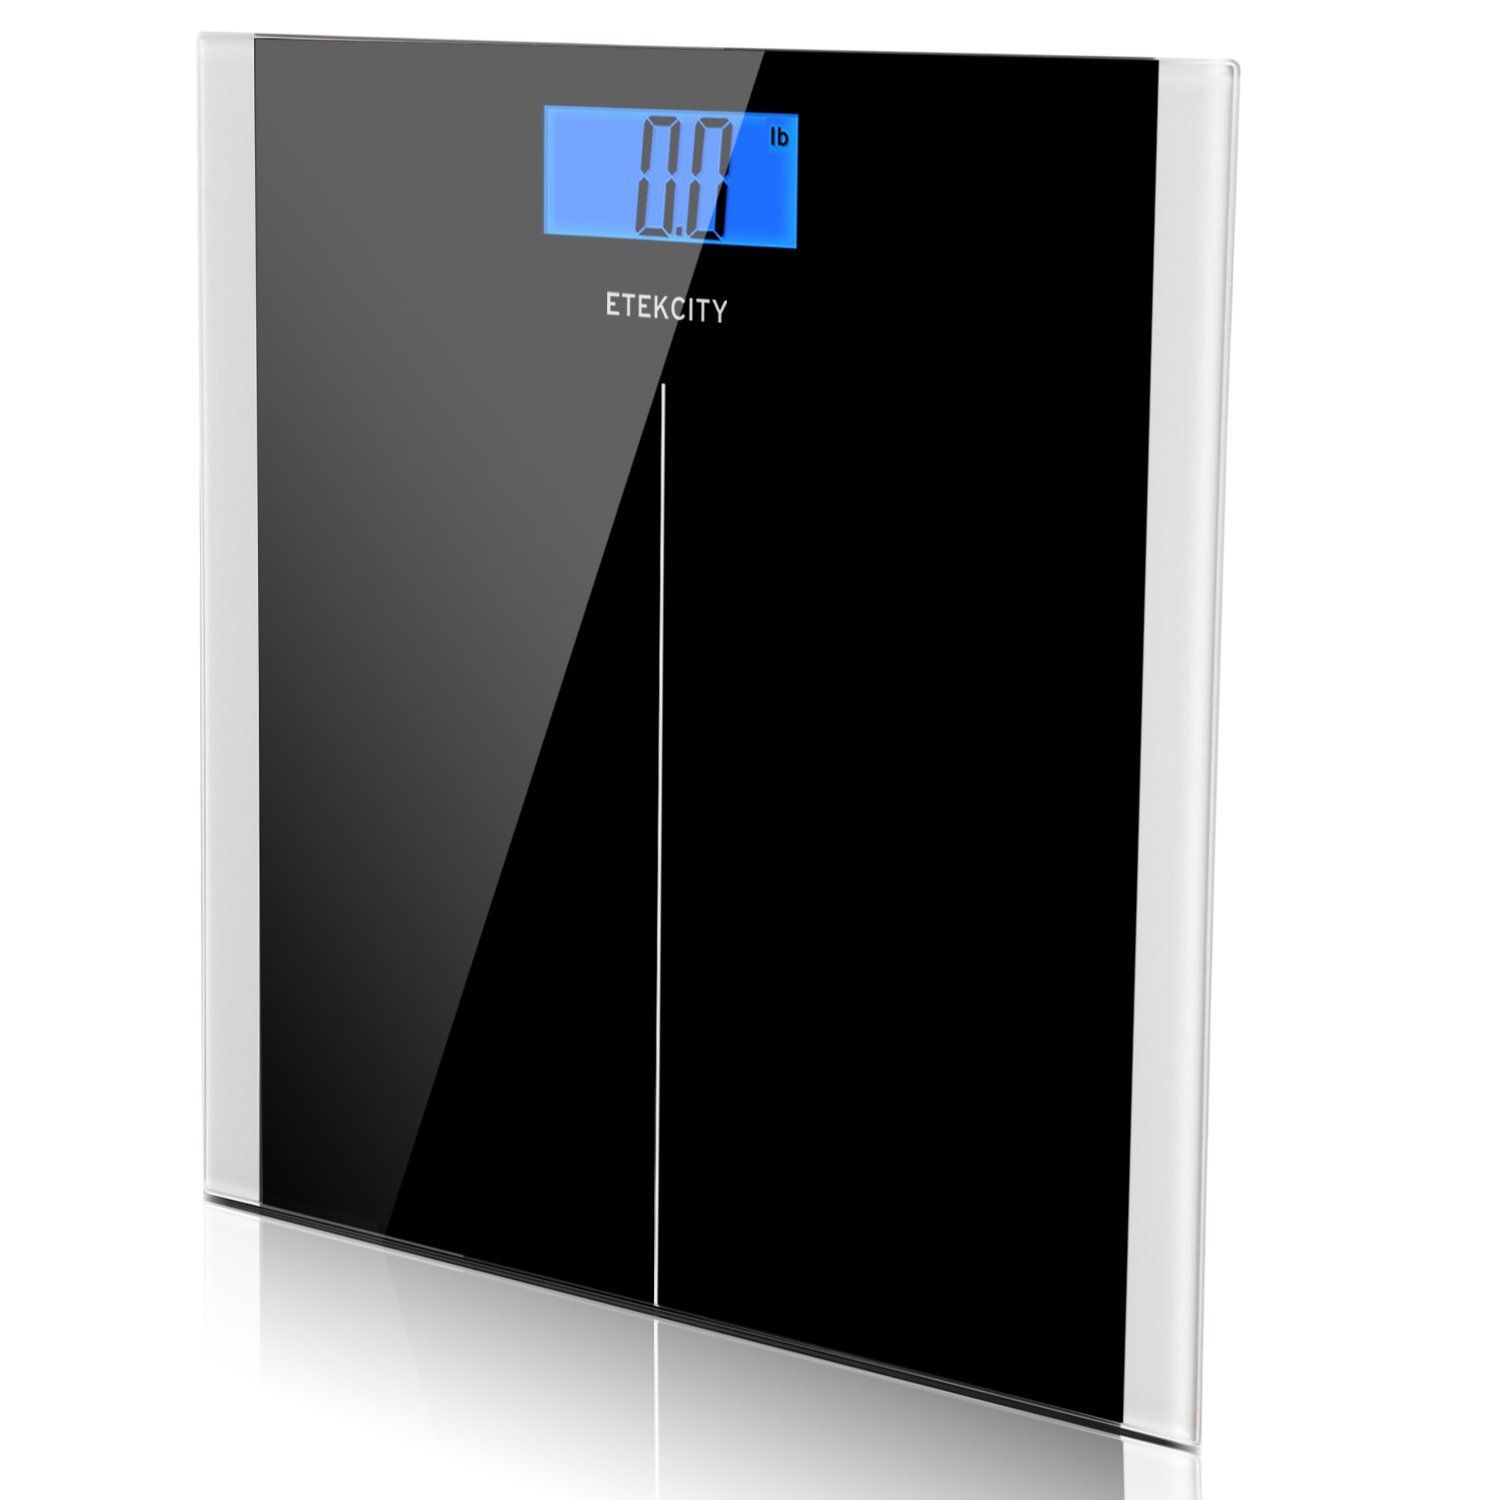 Top 10 Best Kitchen Scale Reviews Dec 2019 A Guide Body